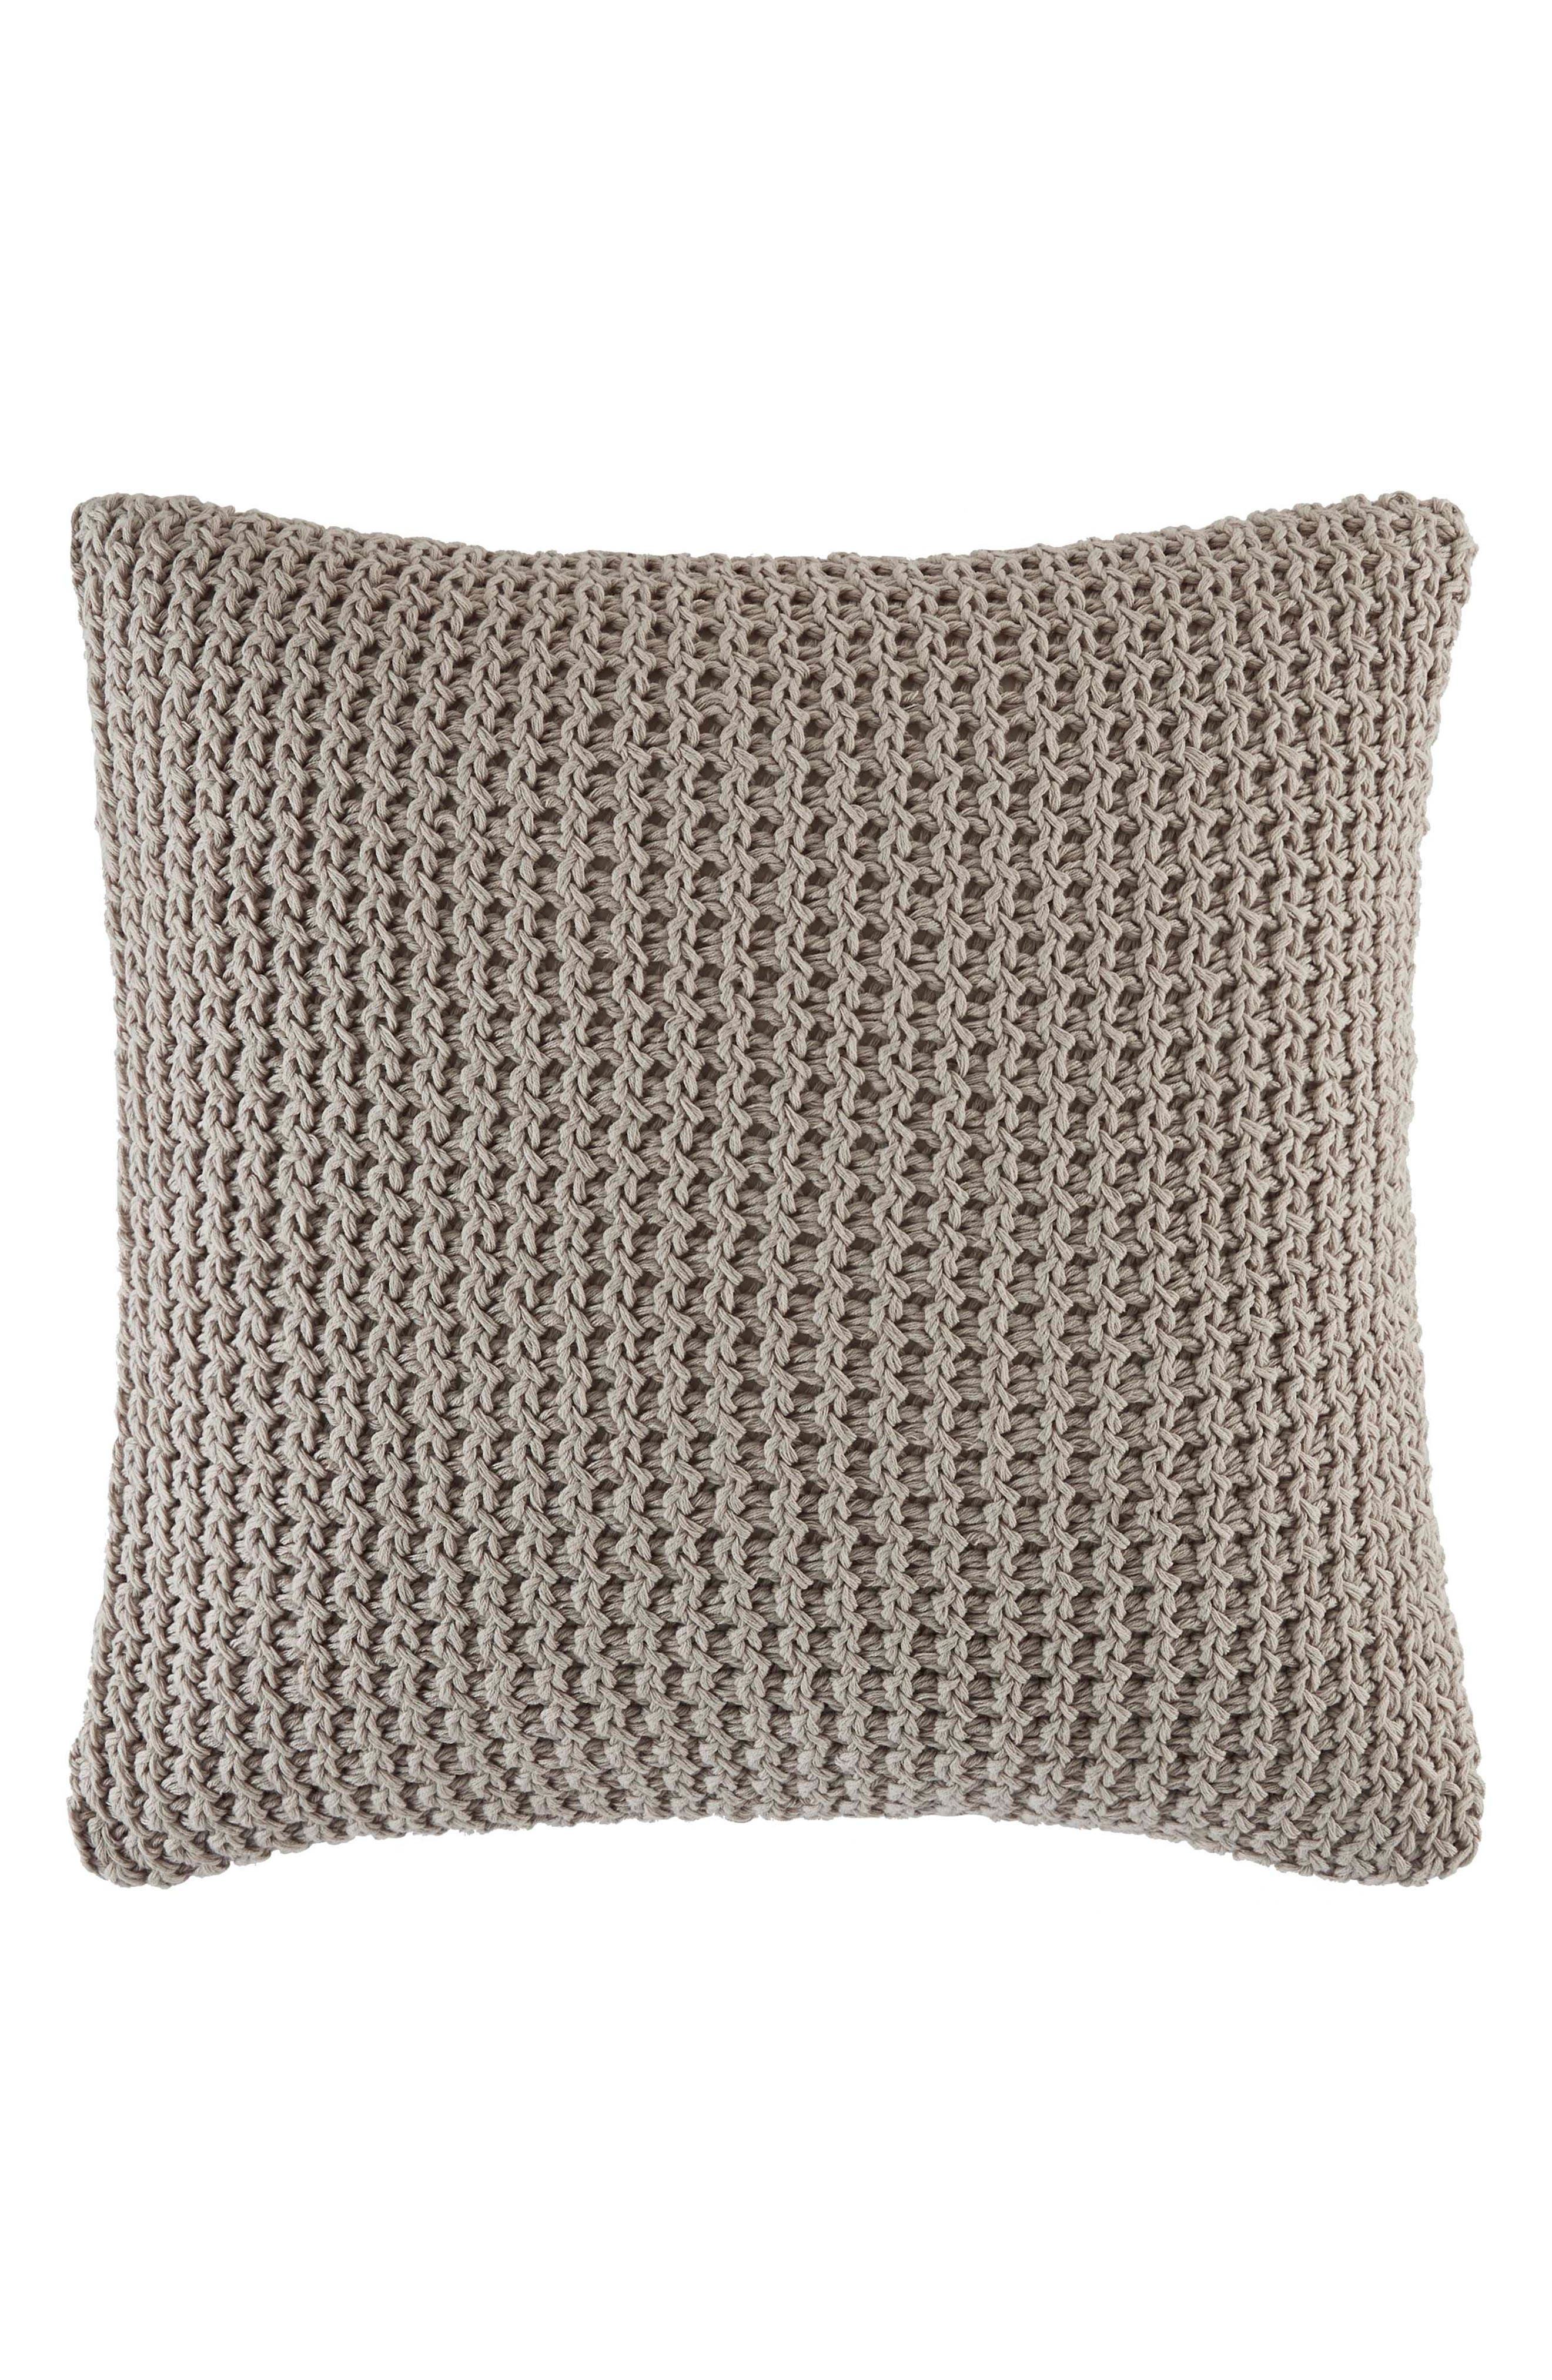 Knotted Pillow,                         Main,                         color, Pastel Grey